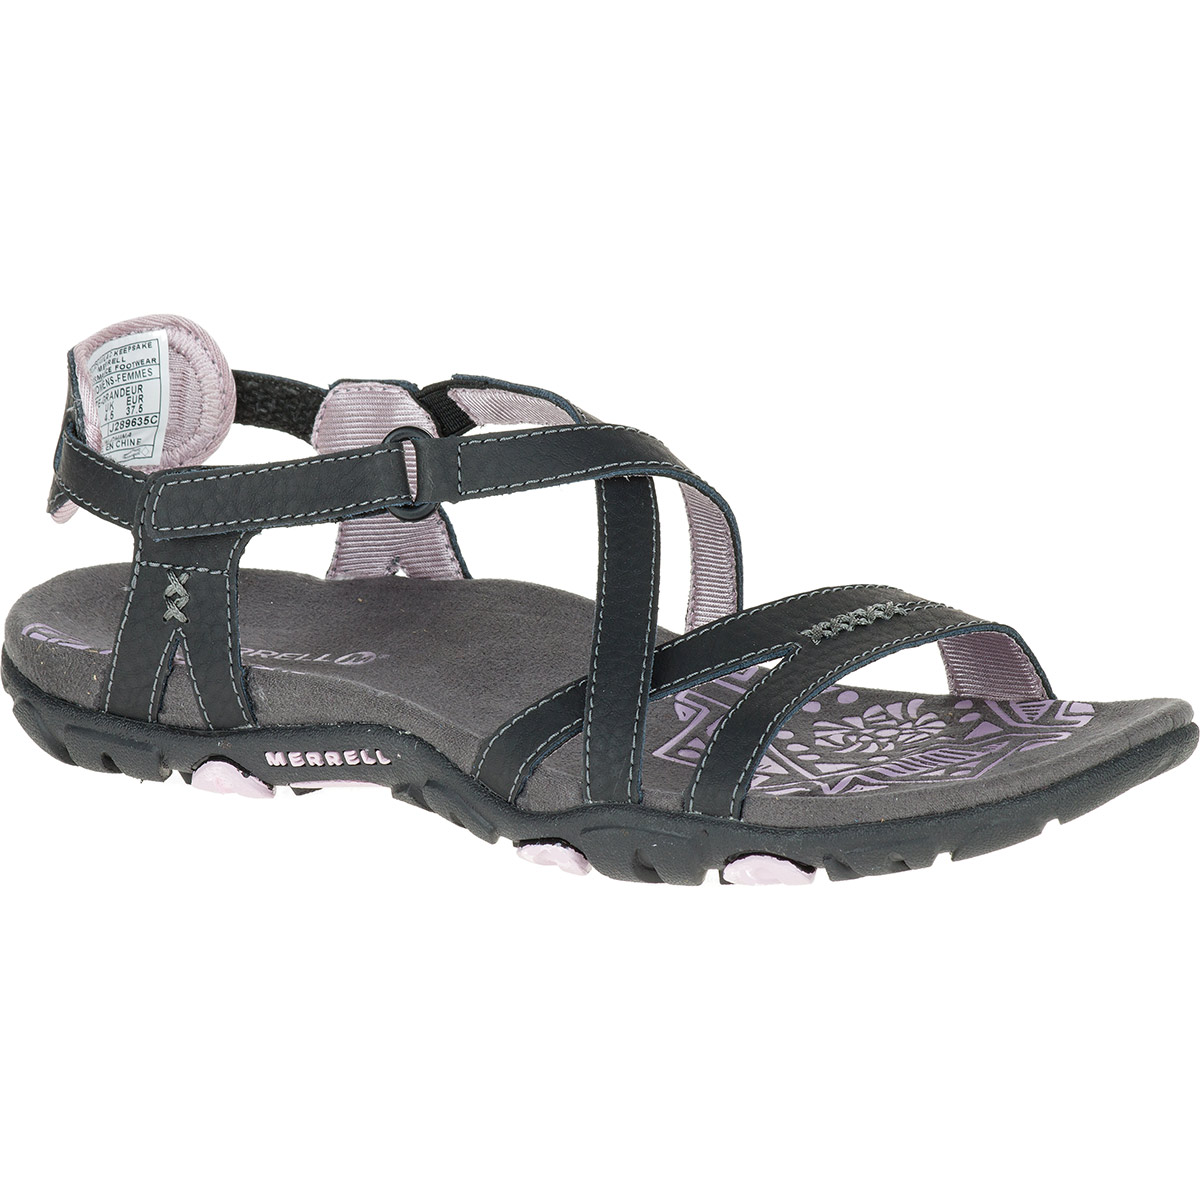 Merrell Women's Sandspur Rose Leather Sandals - Black, 11